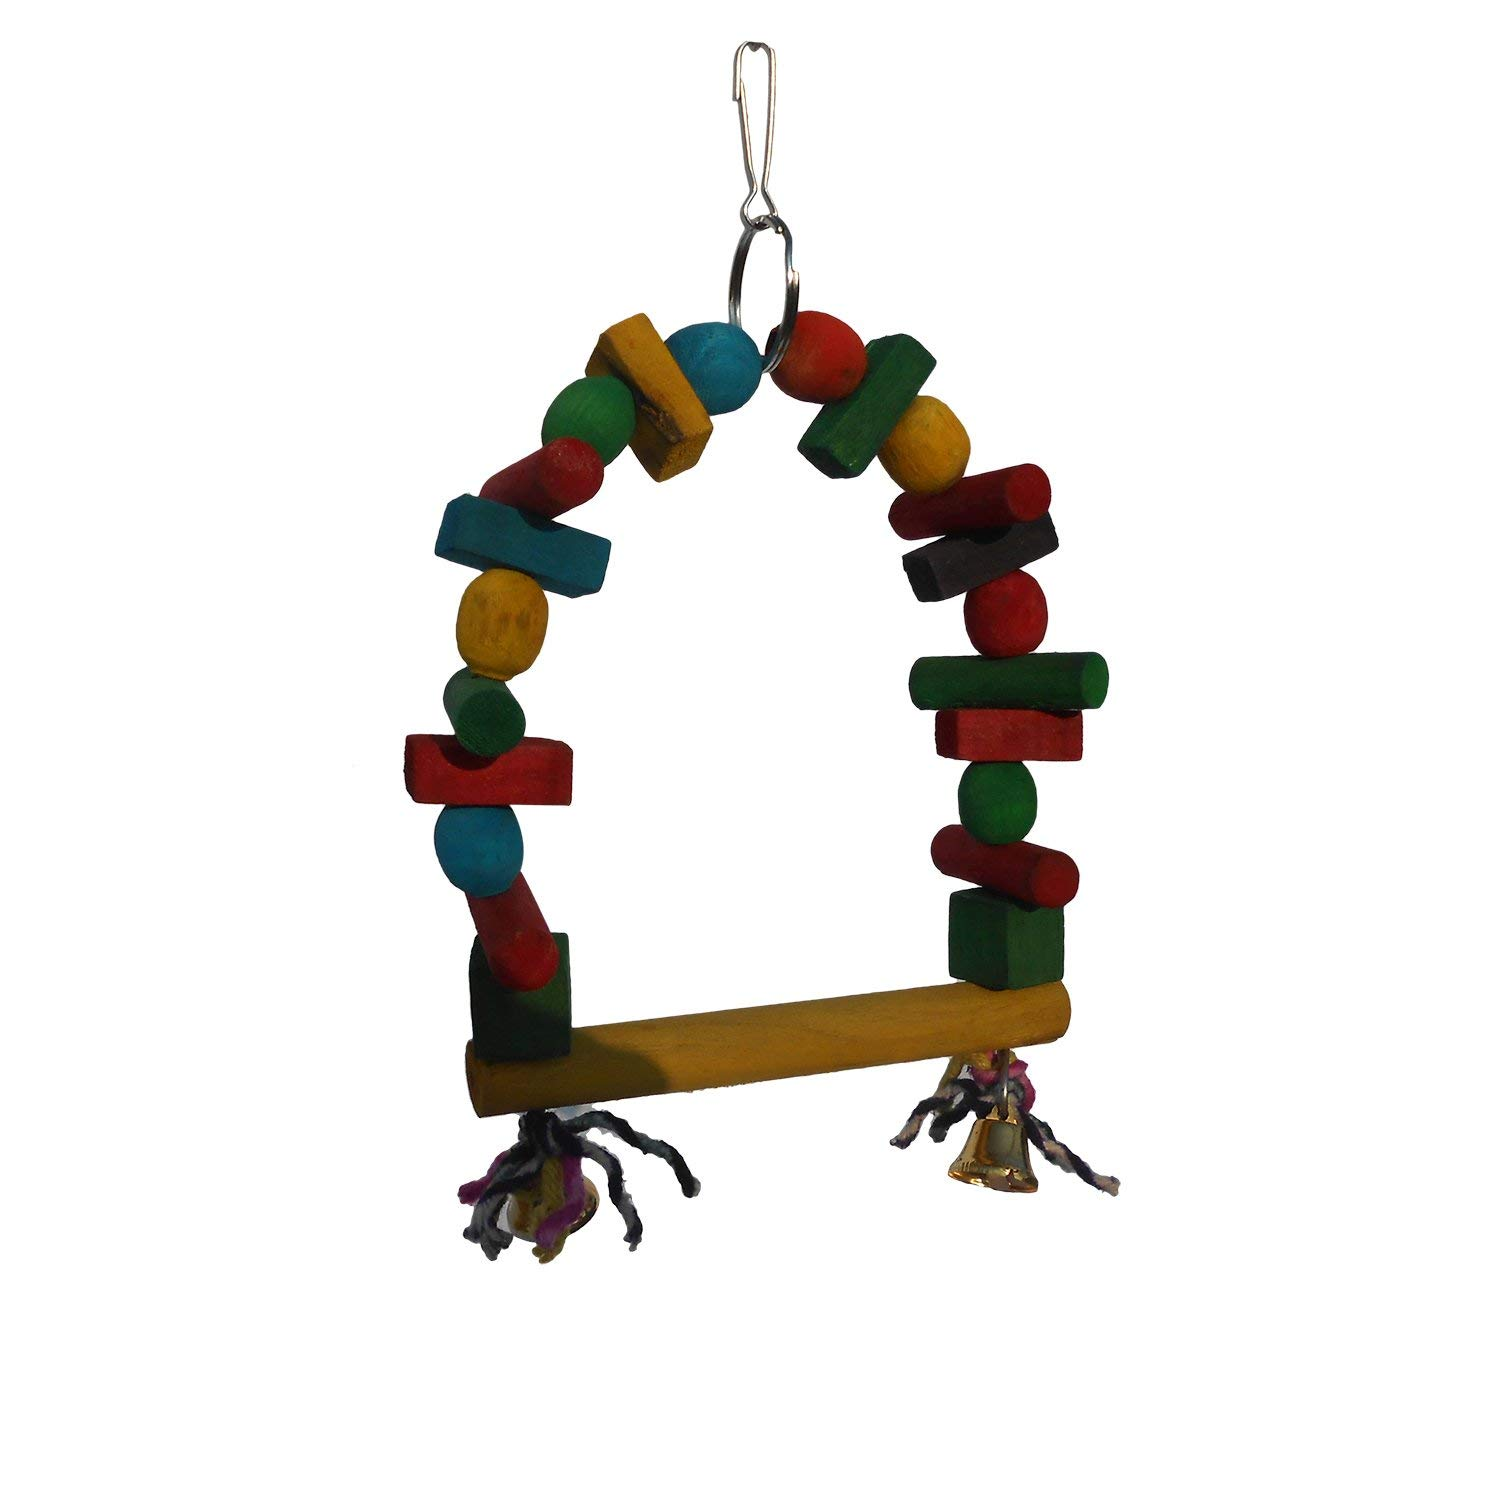 KSK Birds Swing for Lovebird/Parrot/Pet, Bird, Parrot, Parakeet, Budgie, Cockatiel Cage Hammock Swing Toy Hanging Toy [Medium] [with Small Bells] (Style 2) by KSK